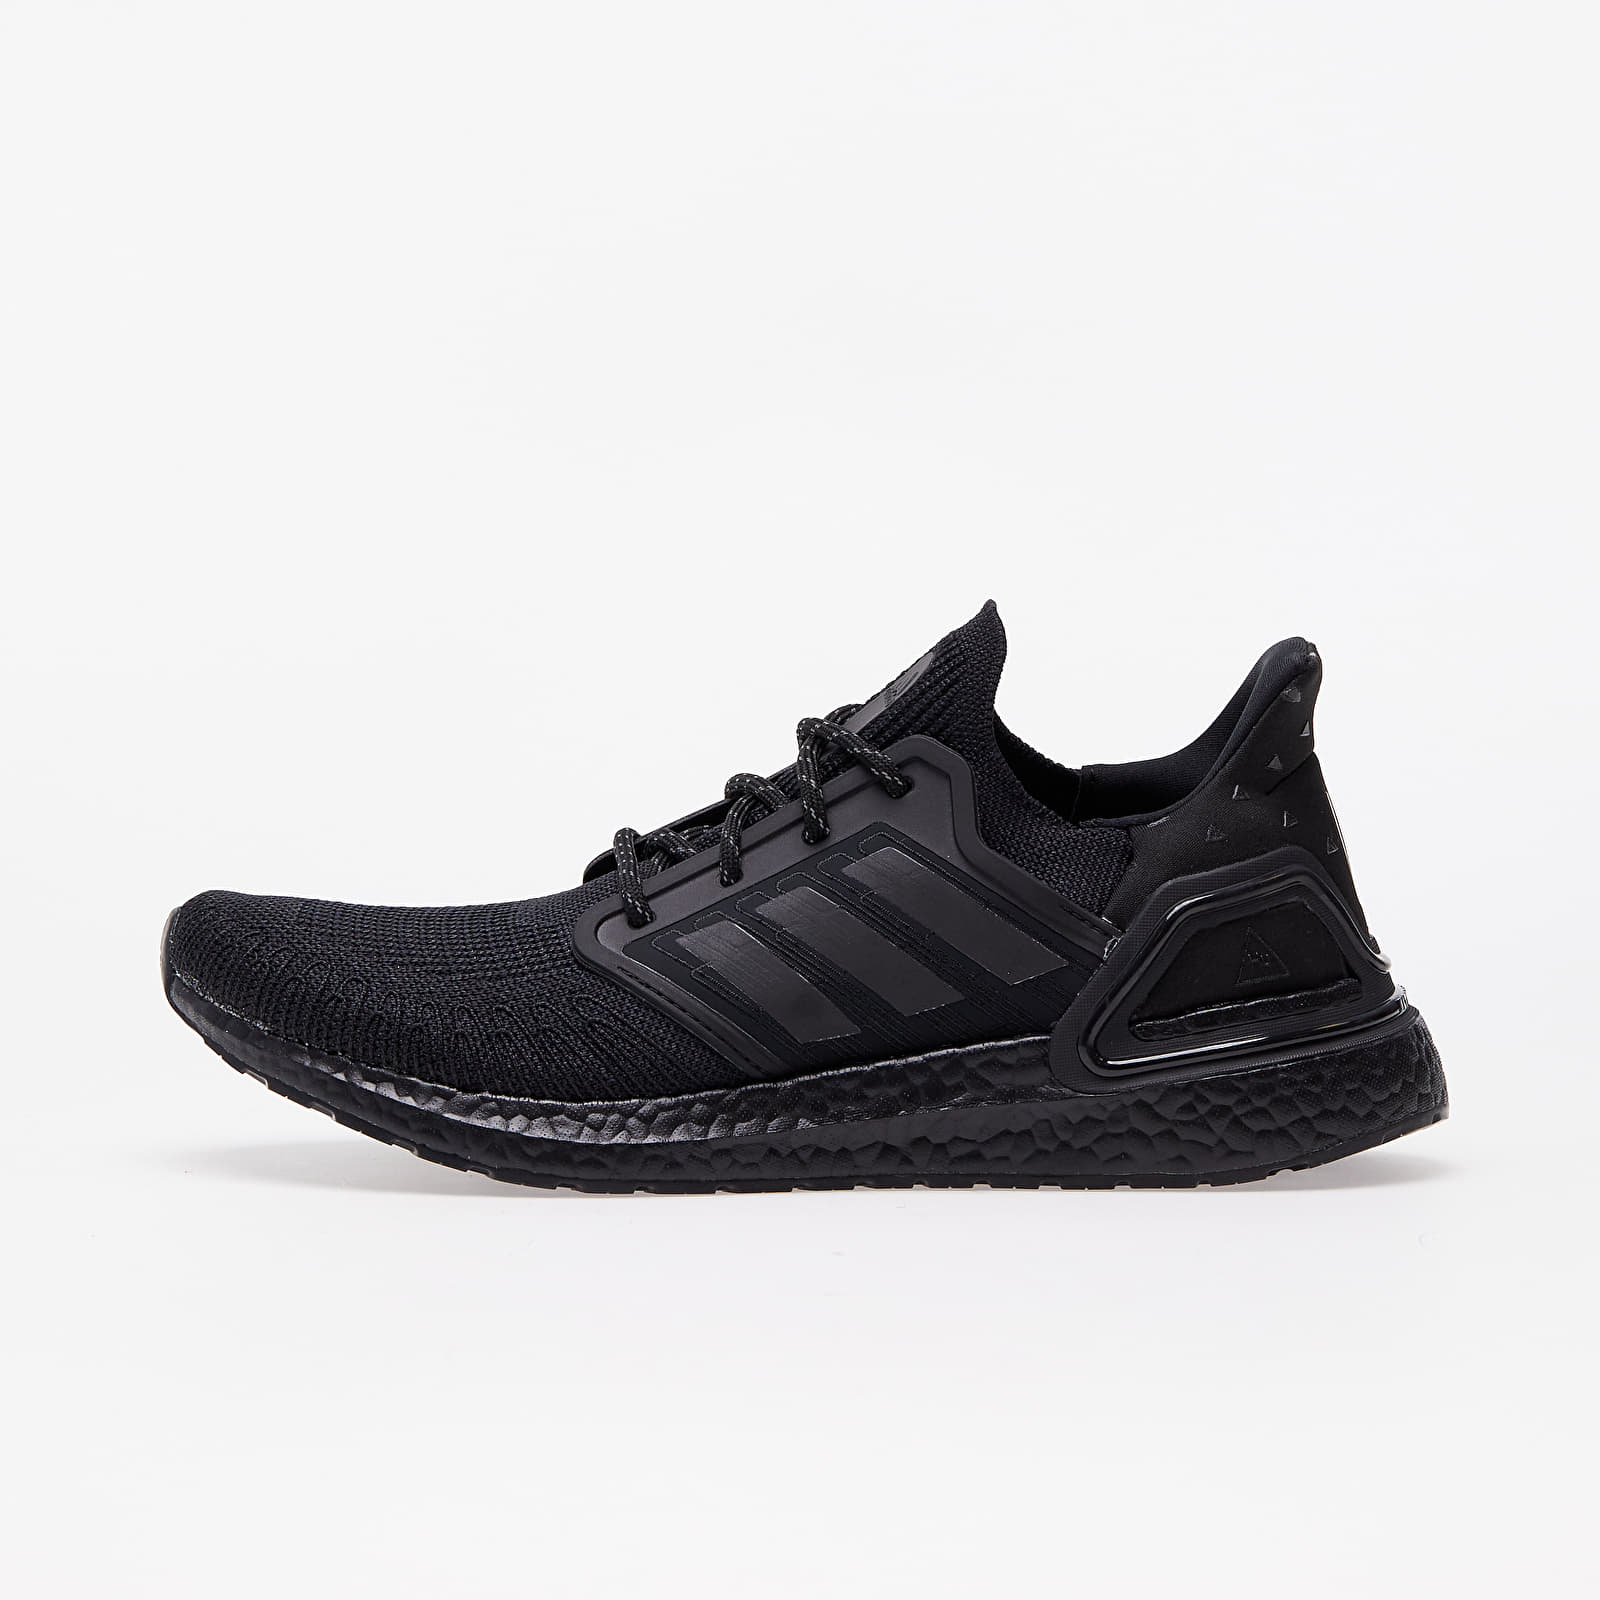 Men's shoes adidas x Pharrell Williams UltraBOOST 20 Core Black/ Core Black/ Core Black